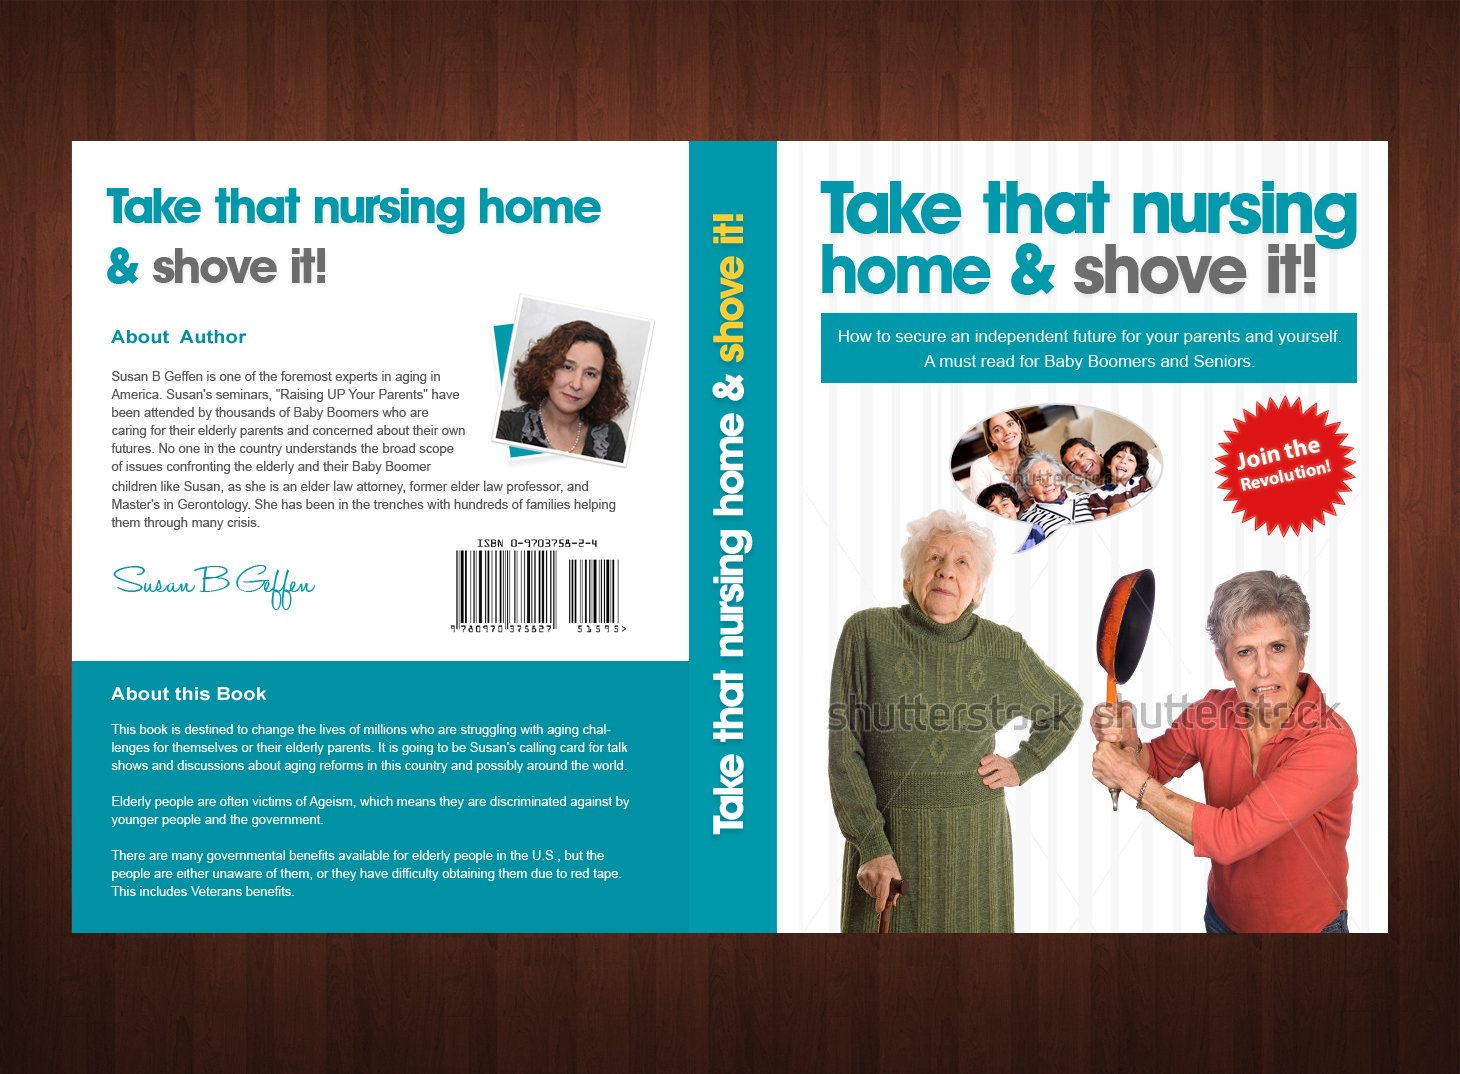 Book cover design contests take that nursing home and shove it book cover design by emad a zyed entry no 49 in the book cover solutioingenieria Images